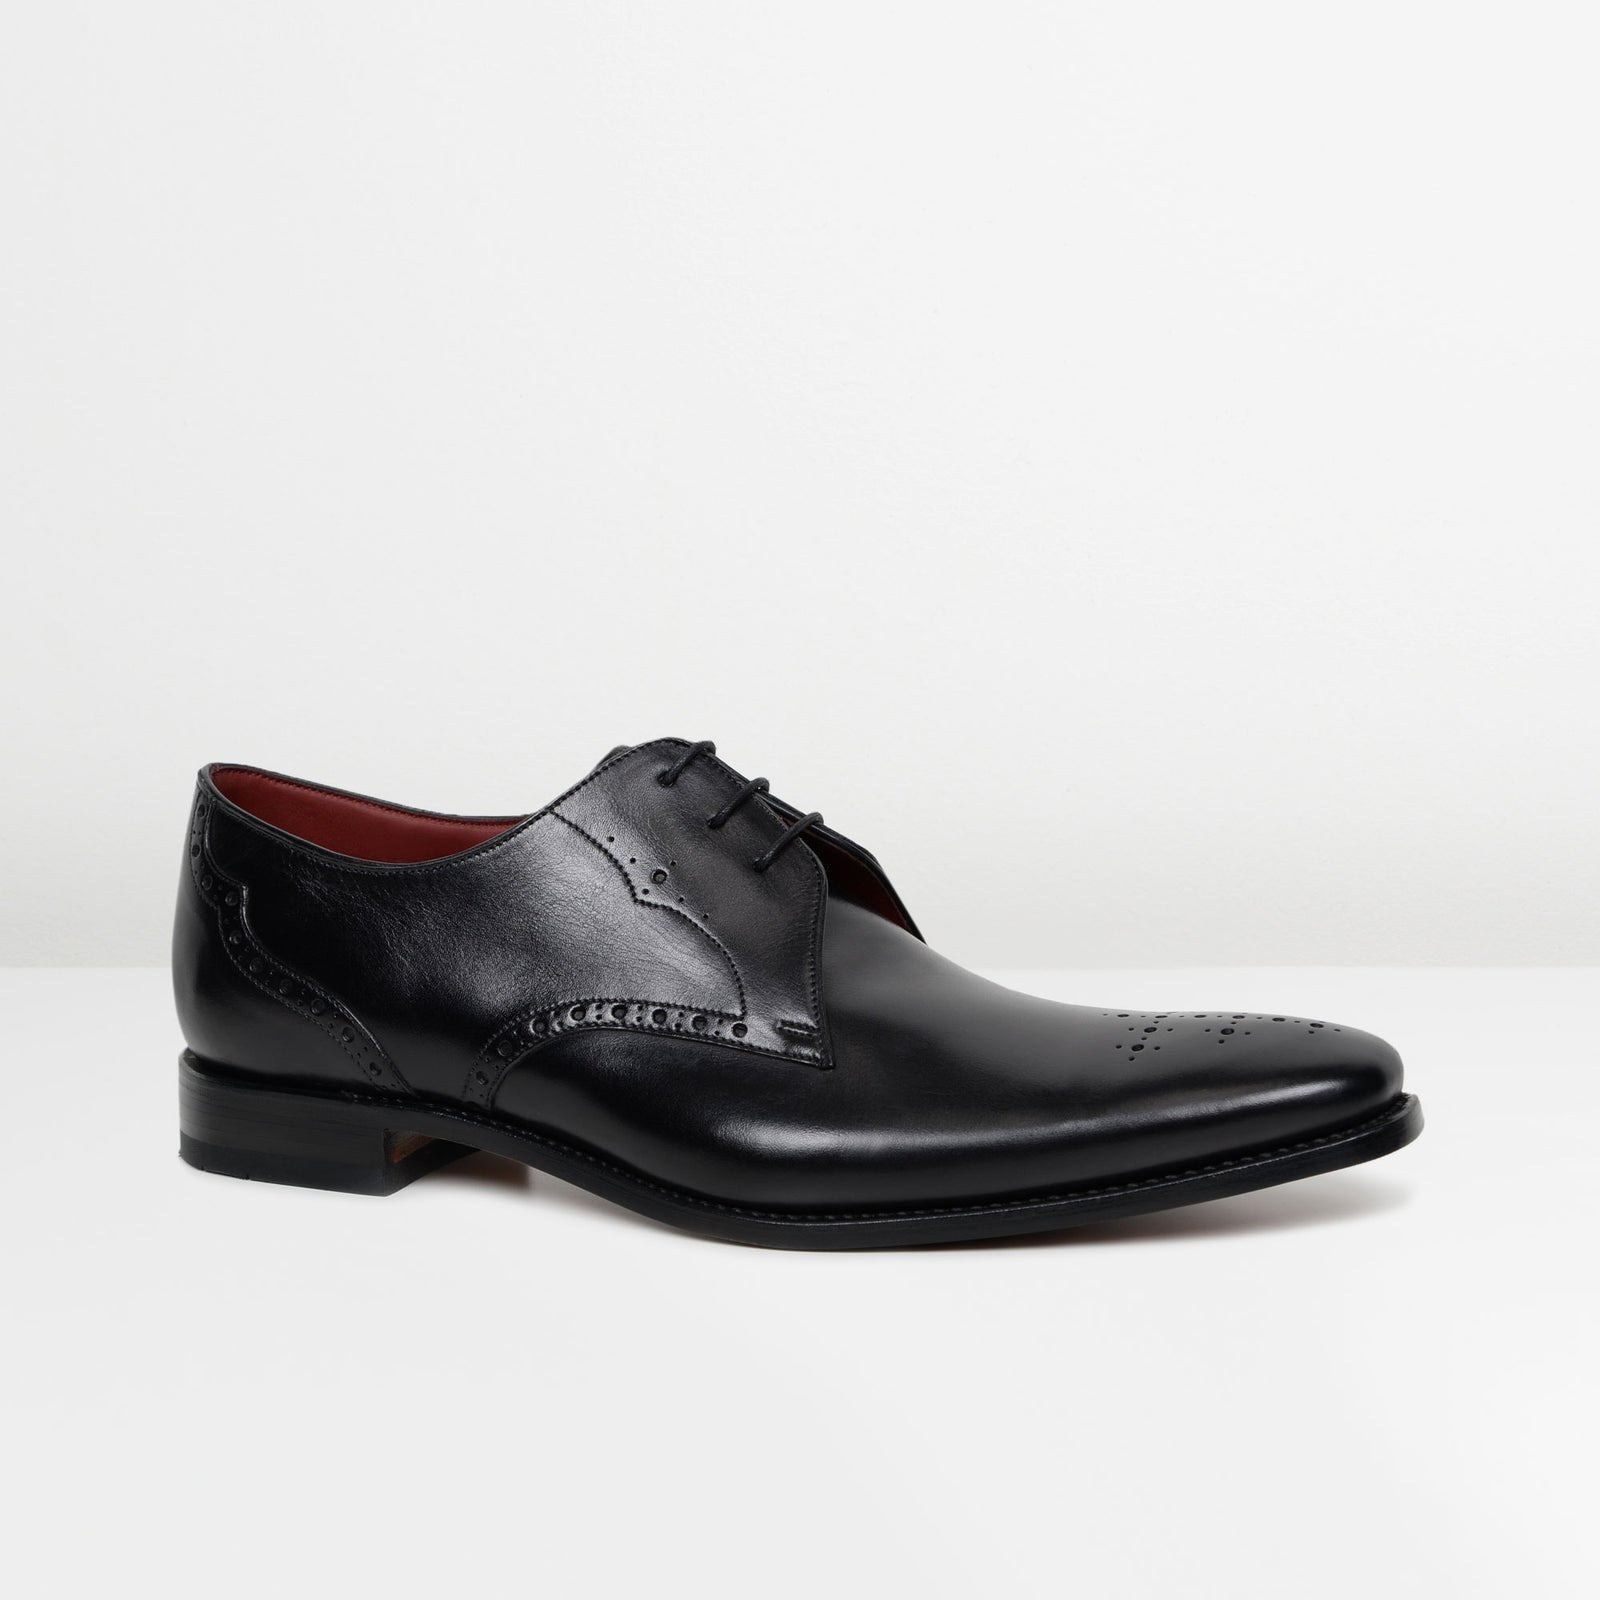 Black Hannibal Derby Shoes